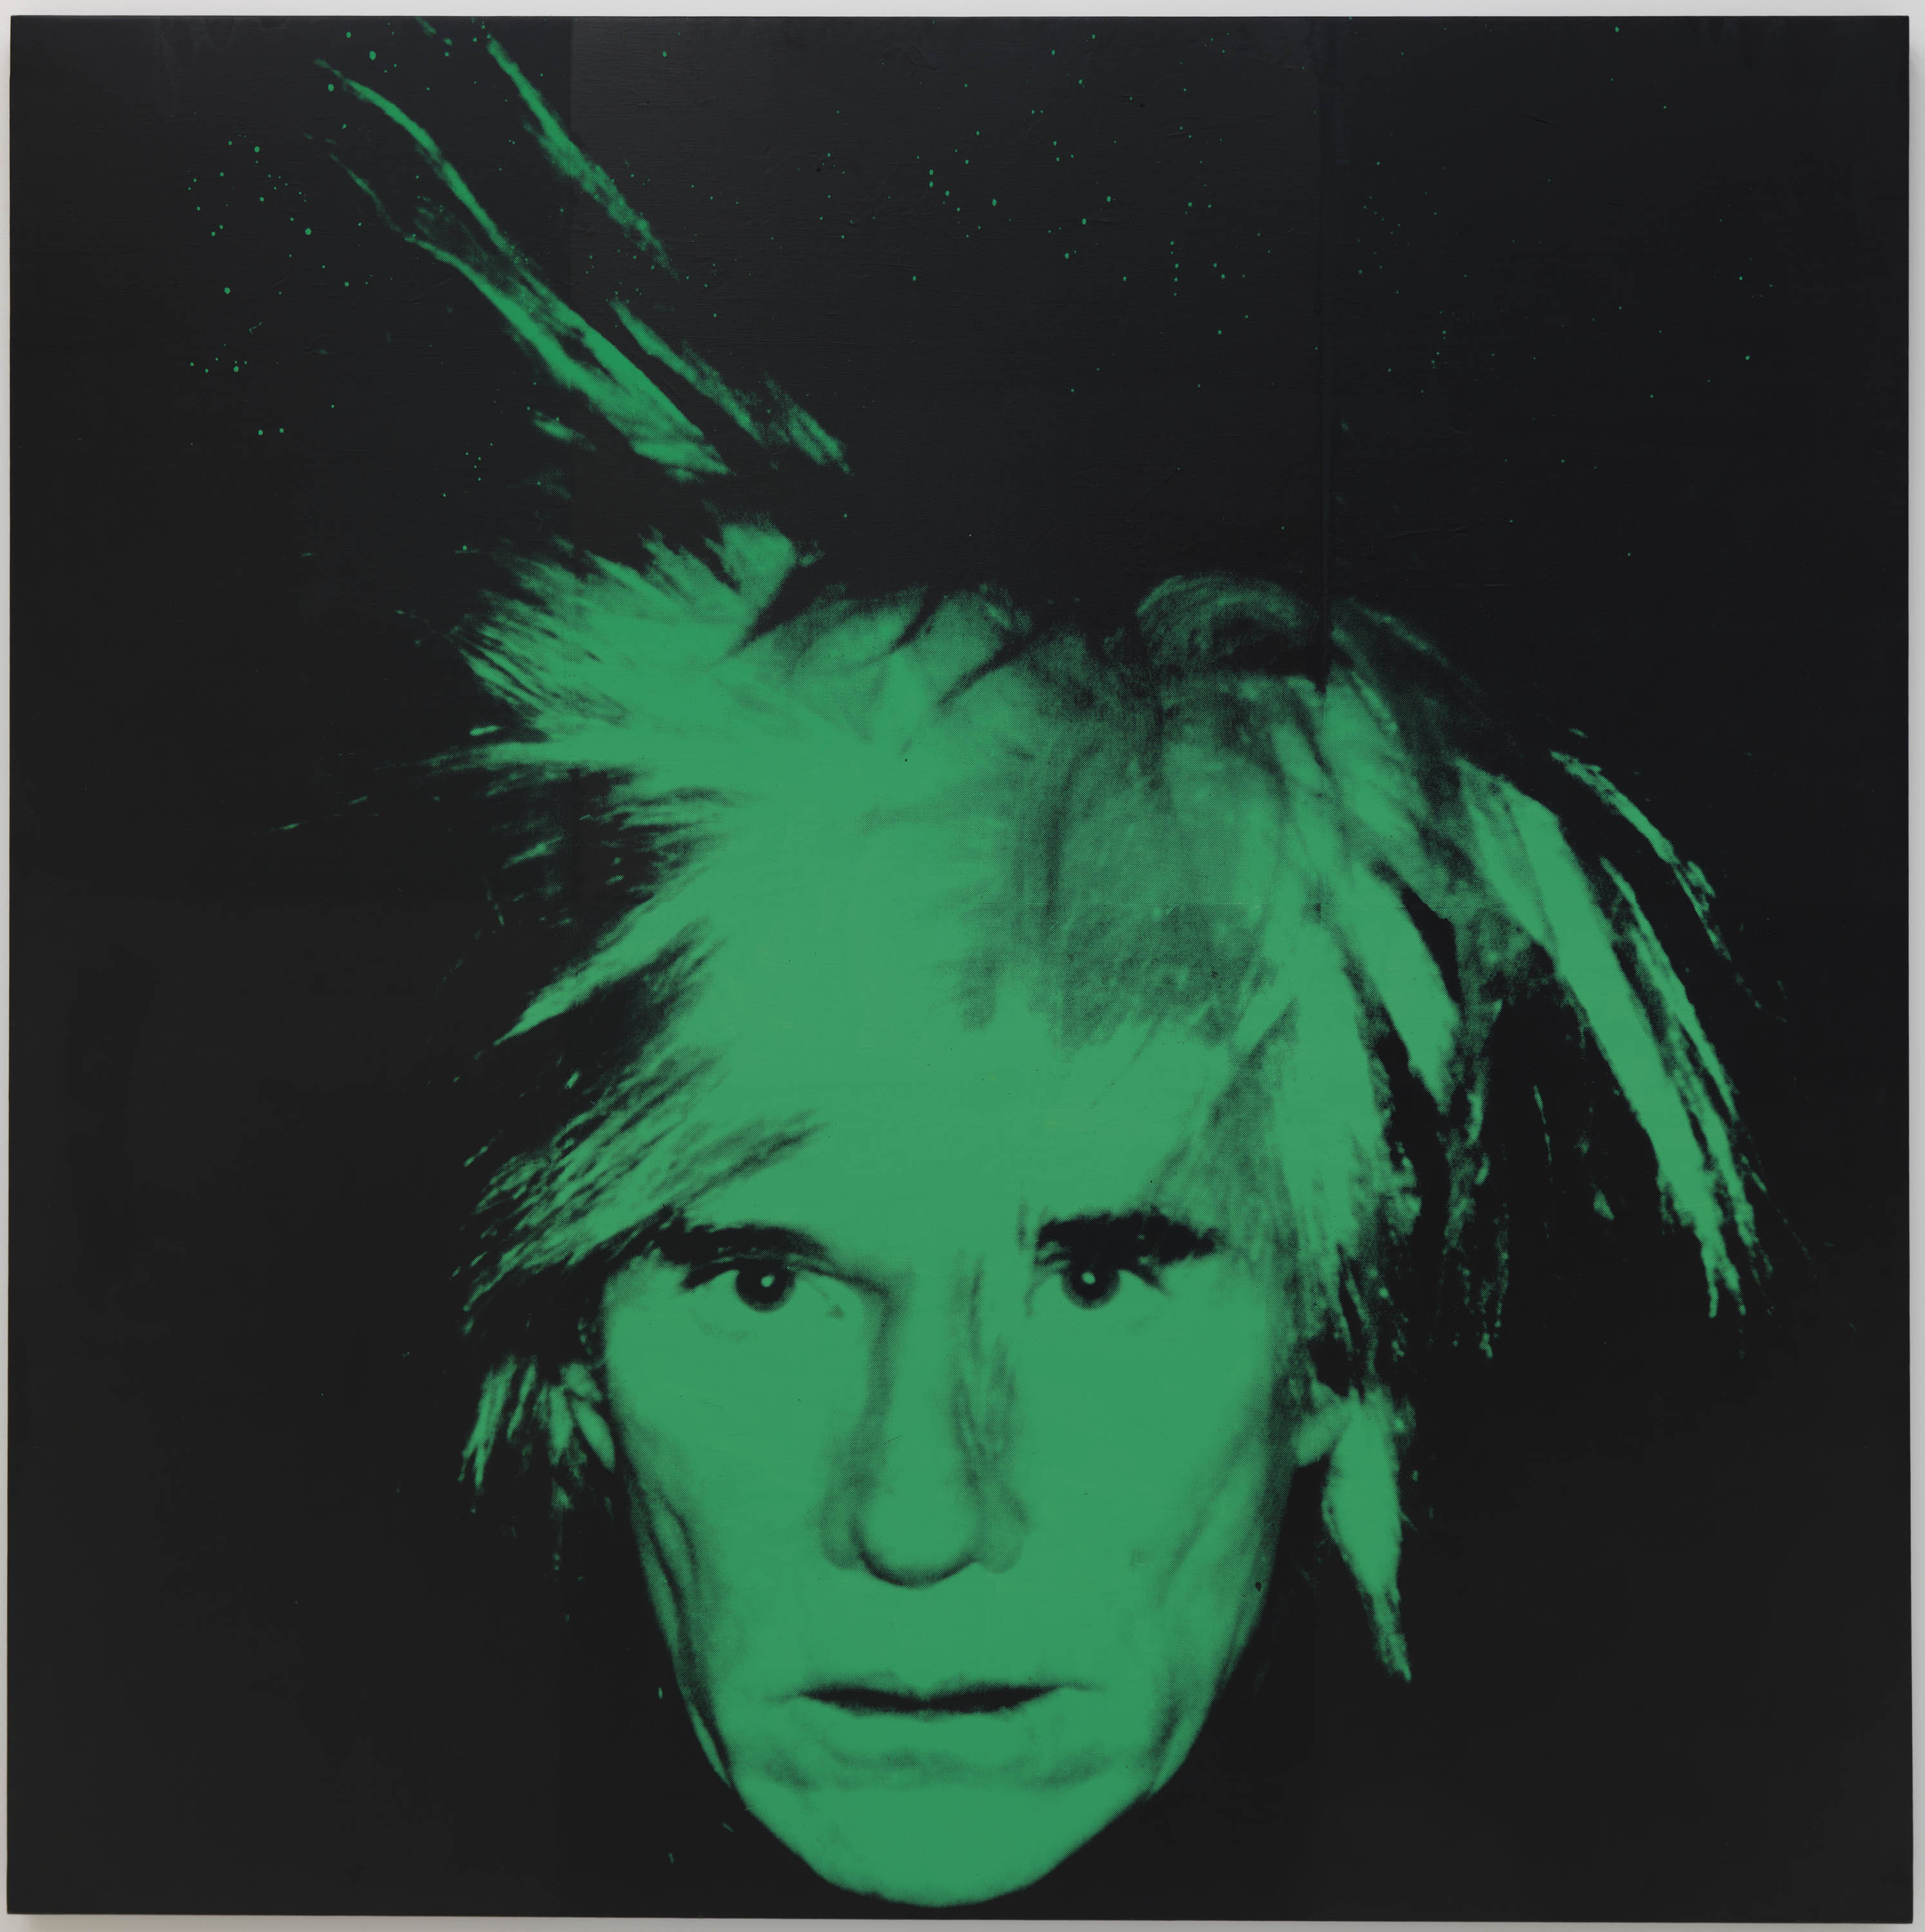 Andy Warhol. Self-Portrait, 1986. Solomon R. Guggenheim Museum, New York; gift, Anne and Anthony d'Offay in honor of Thomas Krens. © 2019 The Andy Warhol Foundation for the Visual Arts, Inc. / Artists Rights Society (ARS), New York.